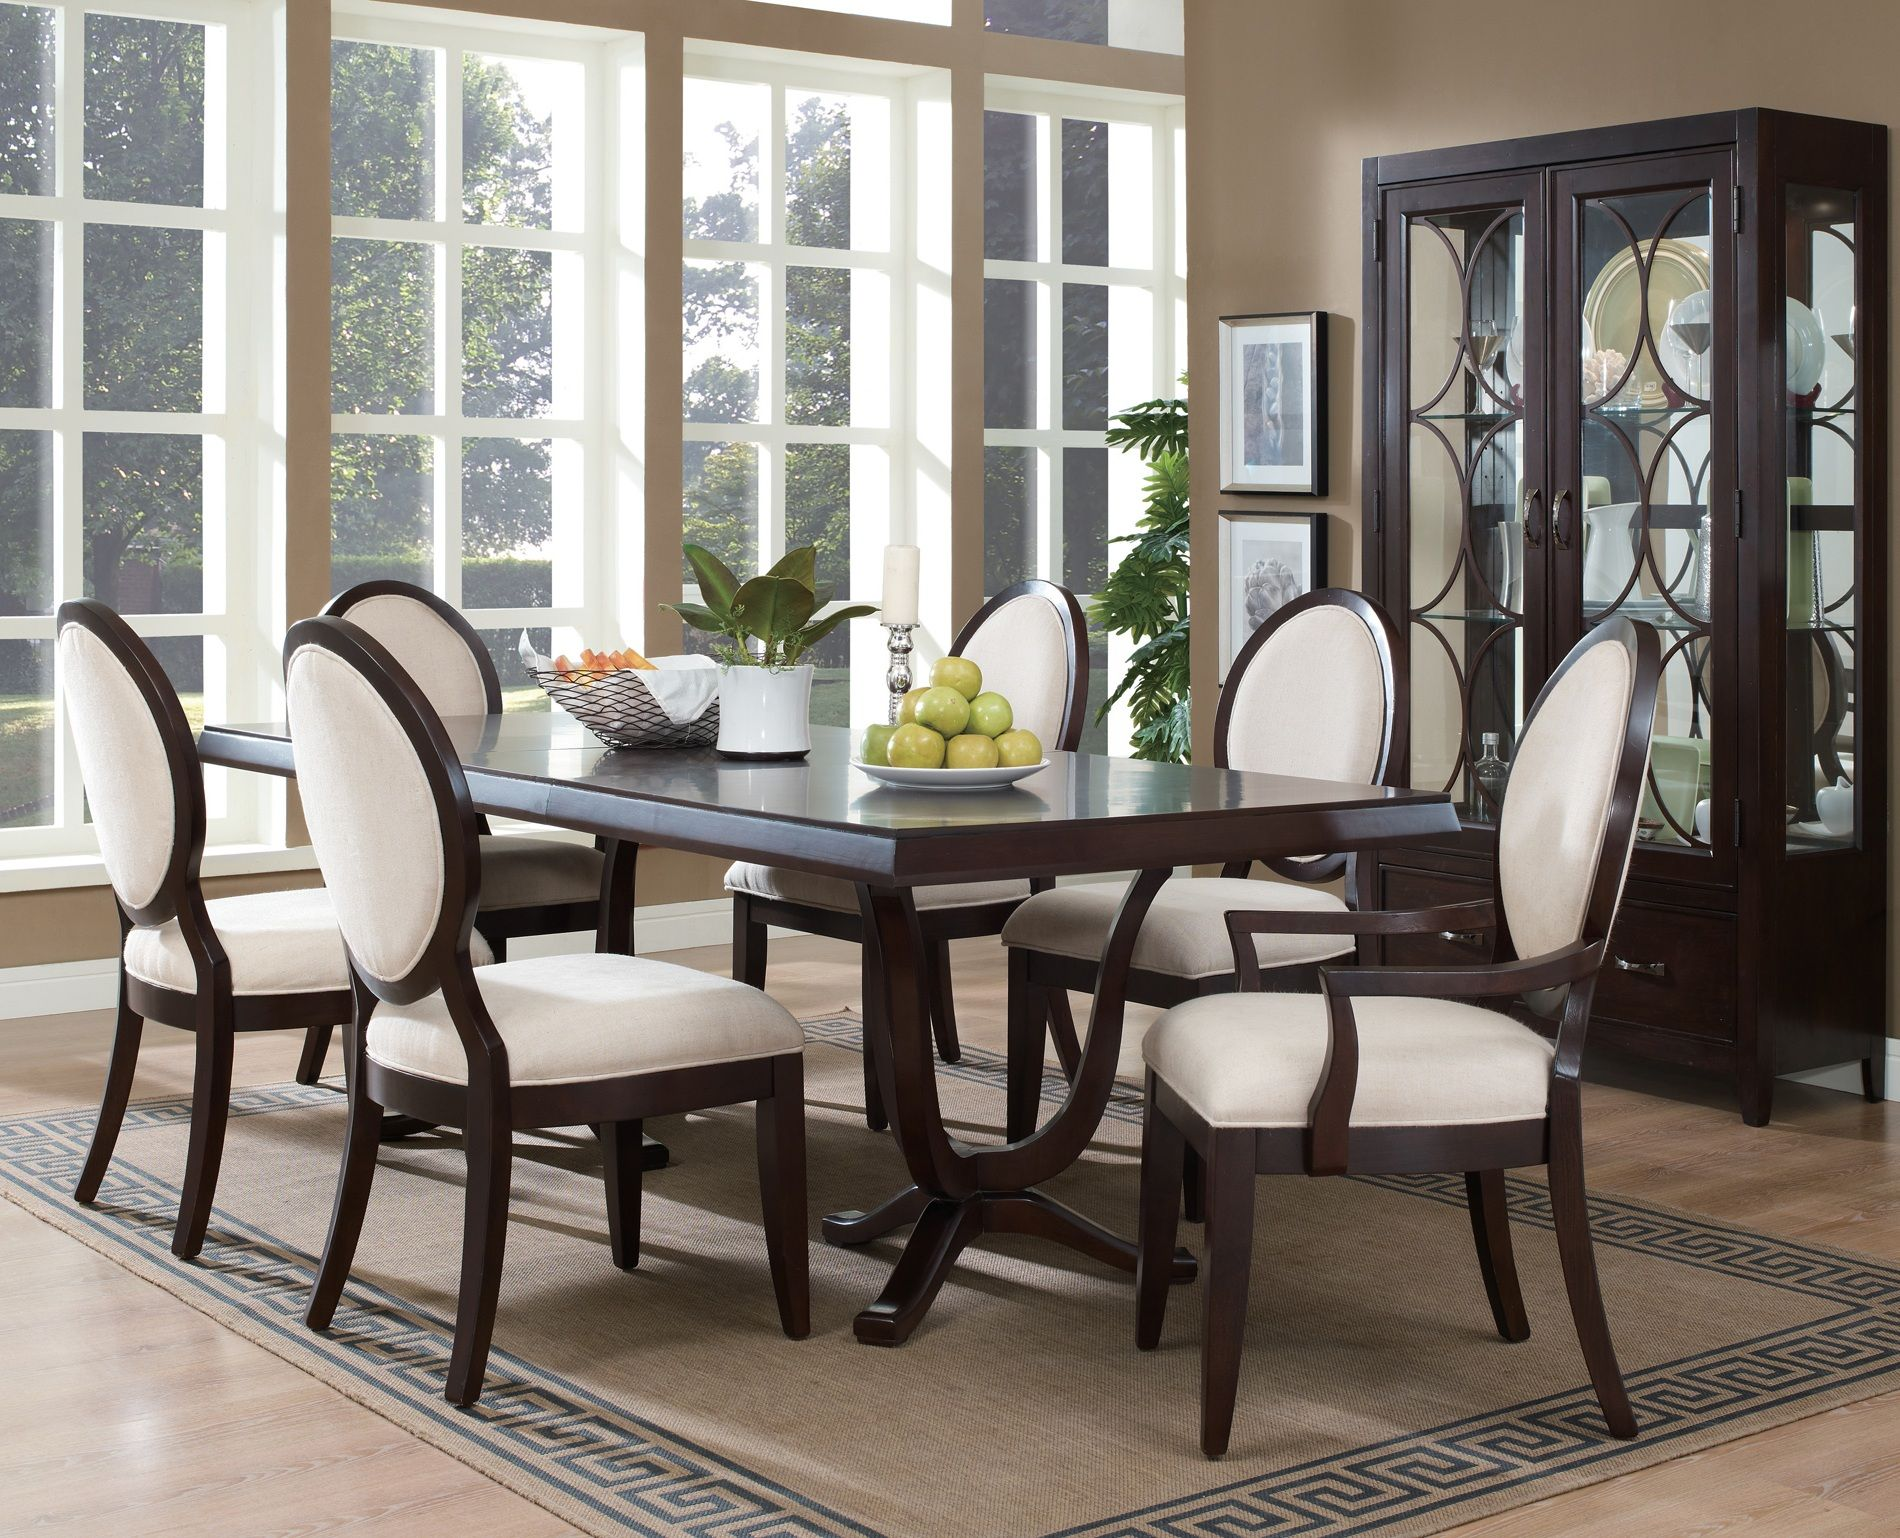 formal dining room furniture. dining room table formal furniture